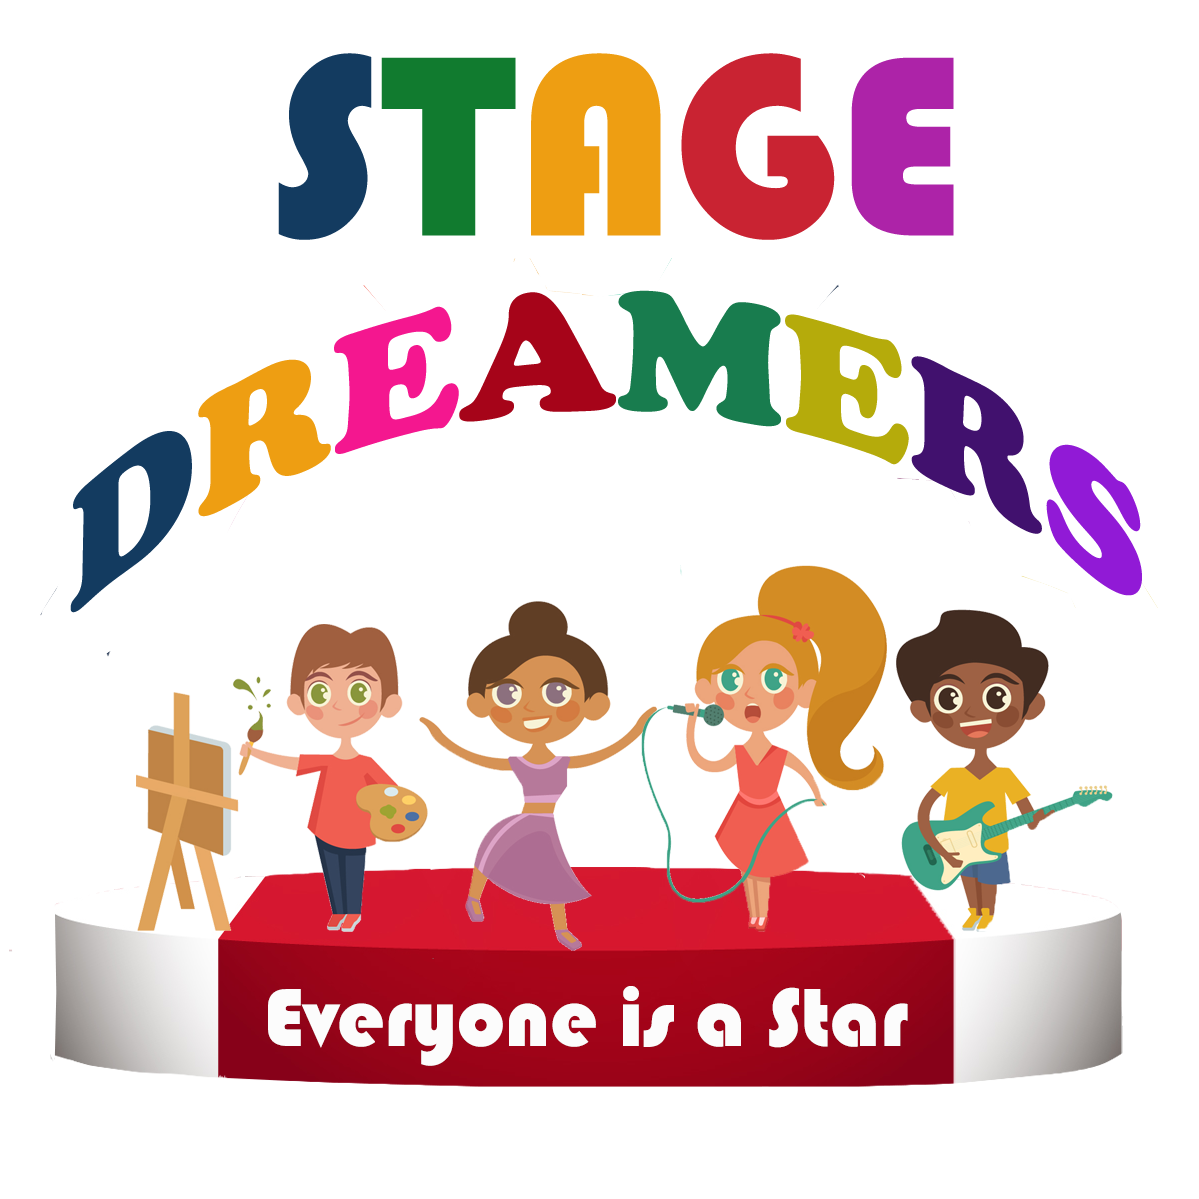 Stage Dreamers, LLC